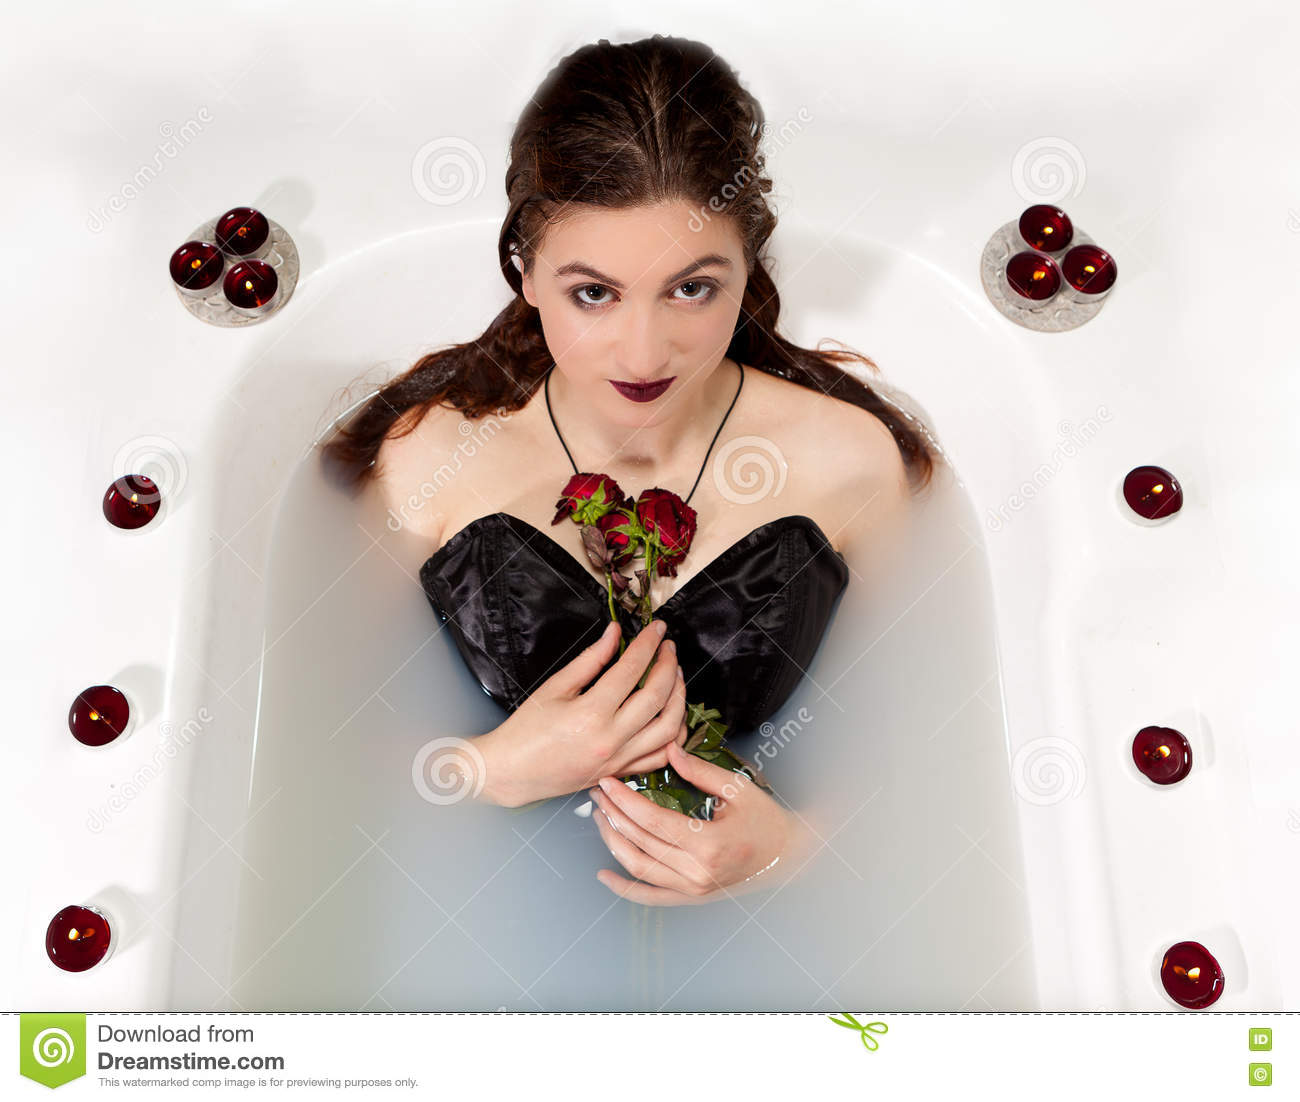 b6f091839ed Girl Milk Water Bath Red Roses Candles Stock Photo - Image of ...